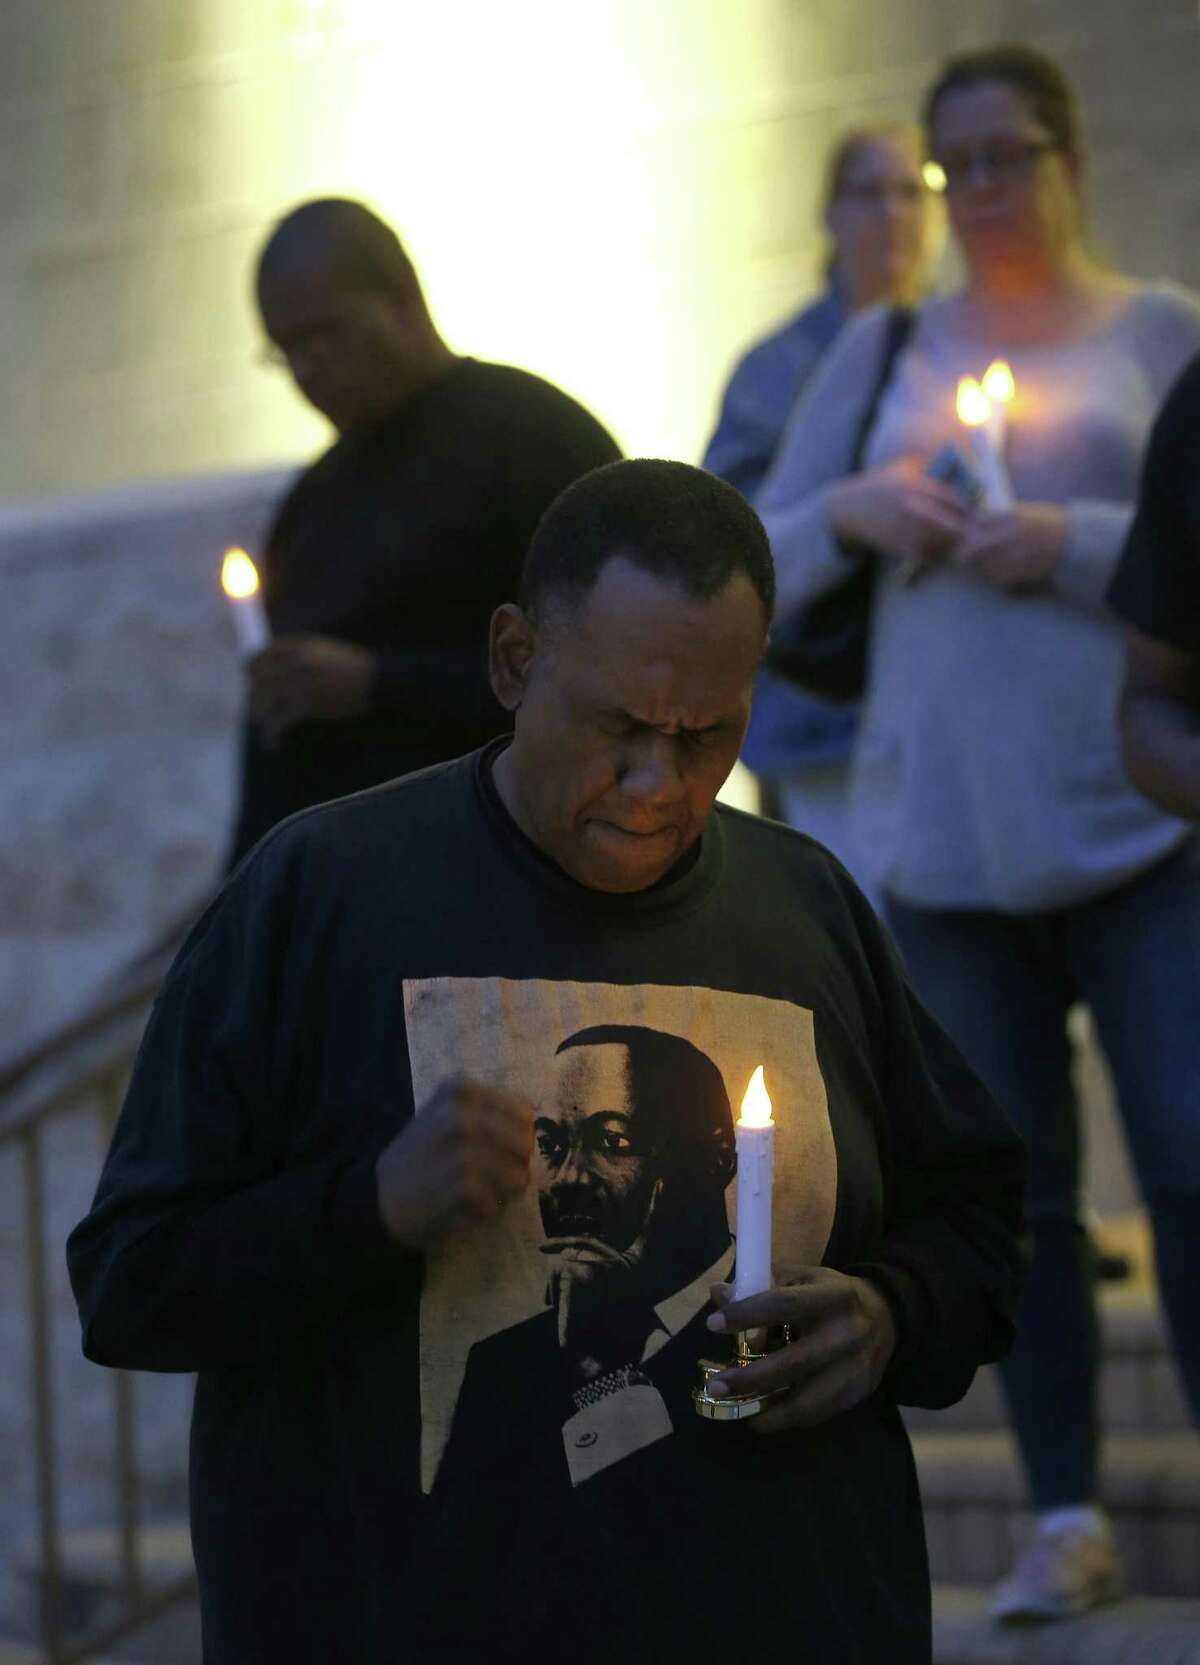 Activist Reginald Moore prays during a moment of silence as he and other community members held a candelight vigil on the steps of City Hall, Sunday, Dec. 16, 2018, at Sugar Land Town Square, in Sugar Land, to honor the 95 African-American remains found at Fort Bend ISD construction site earlier this year.